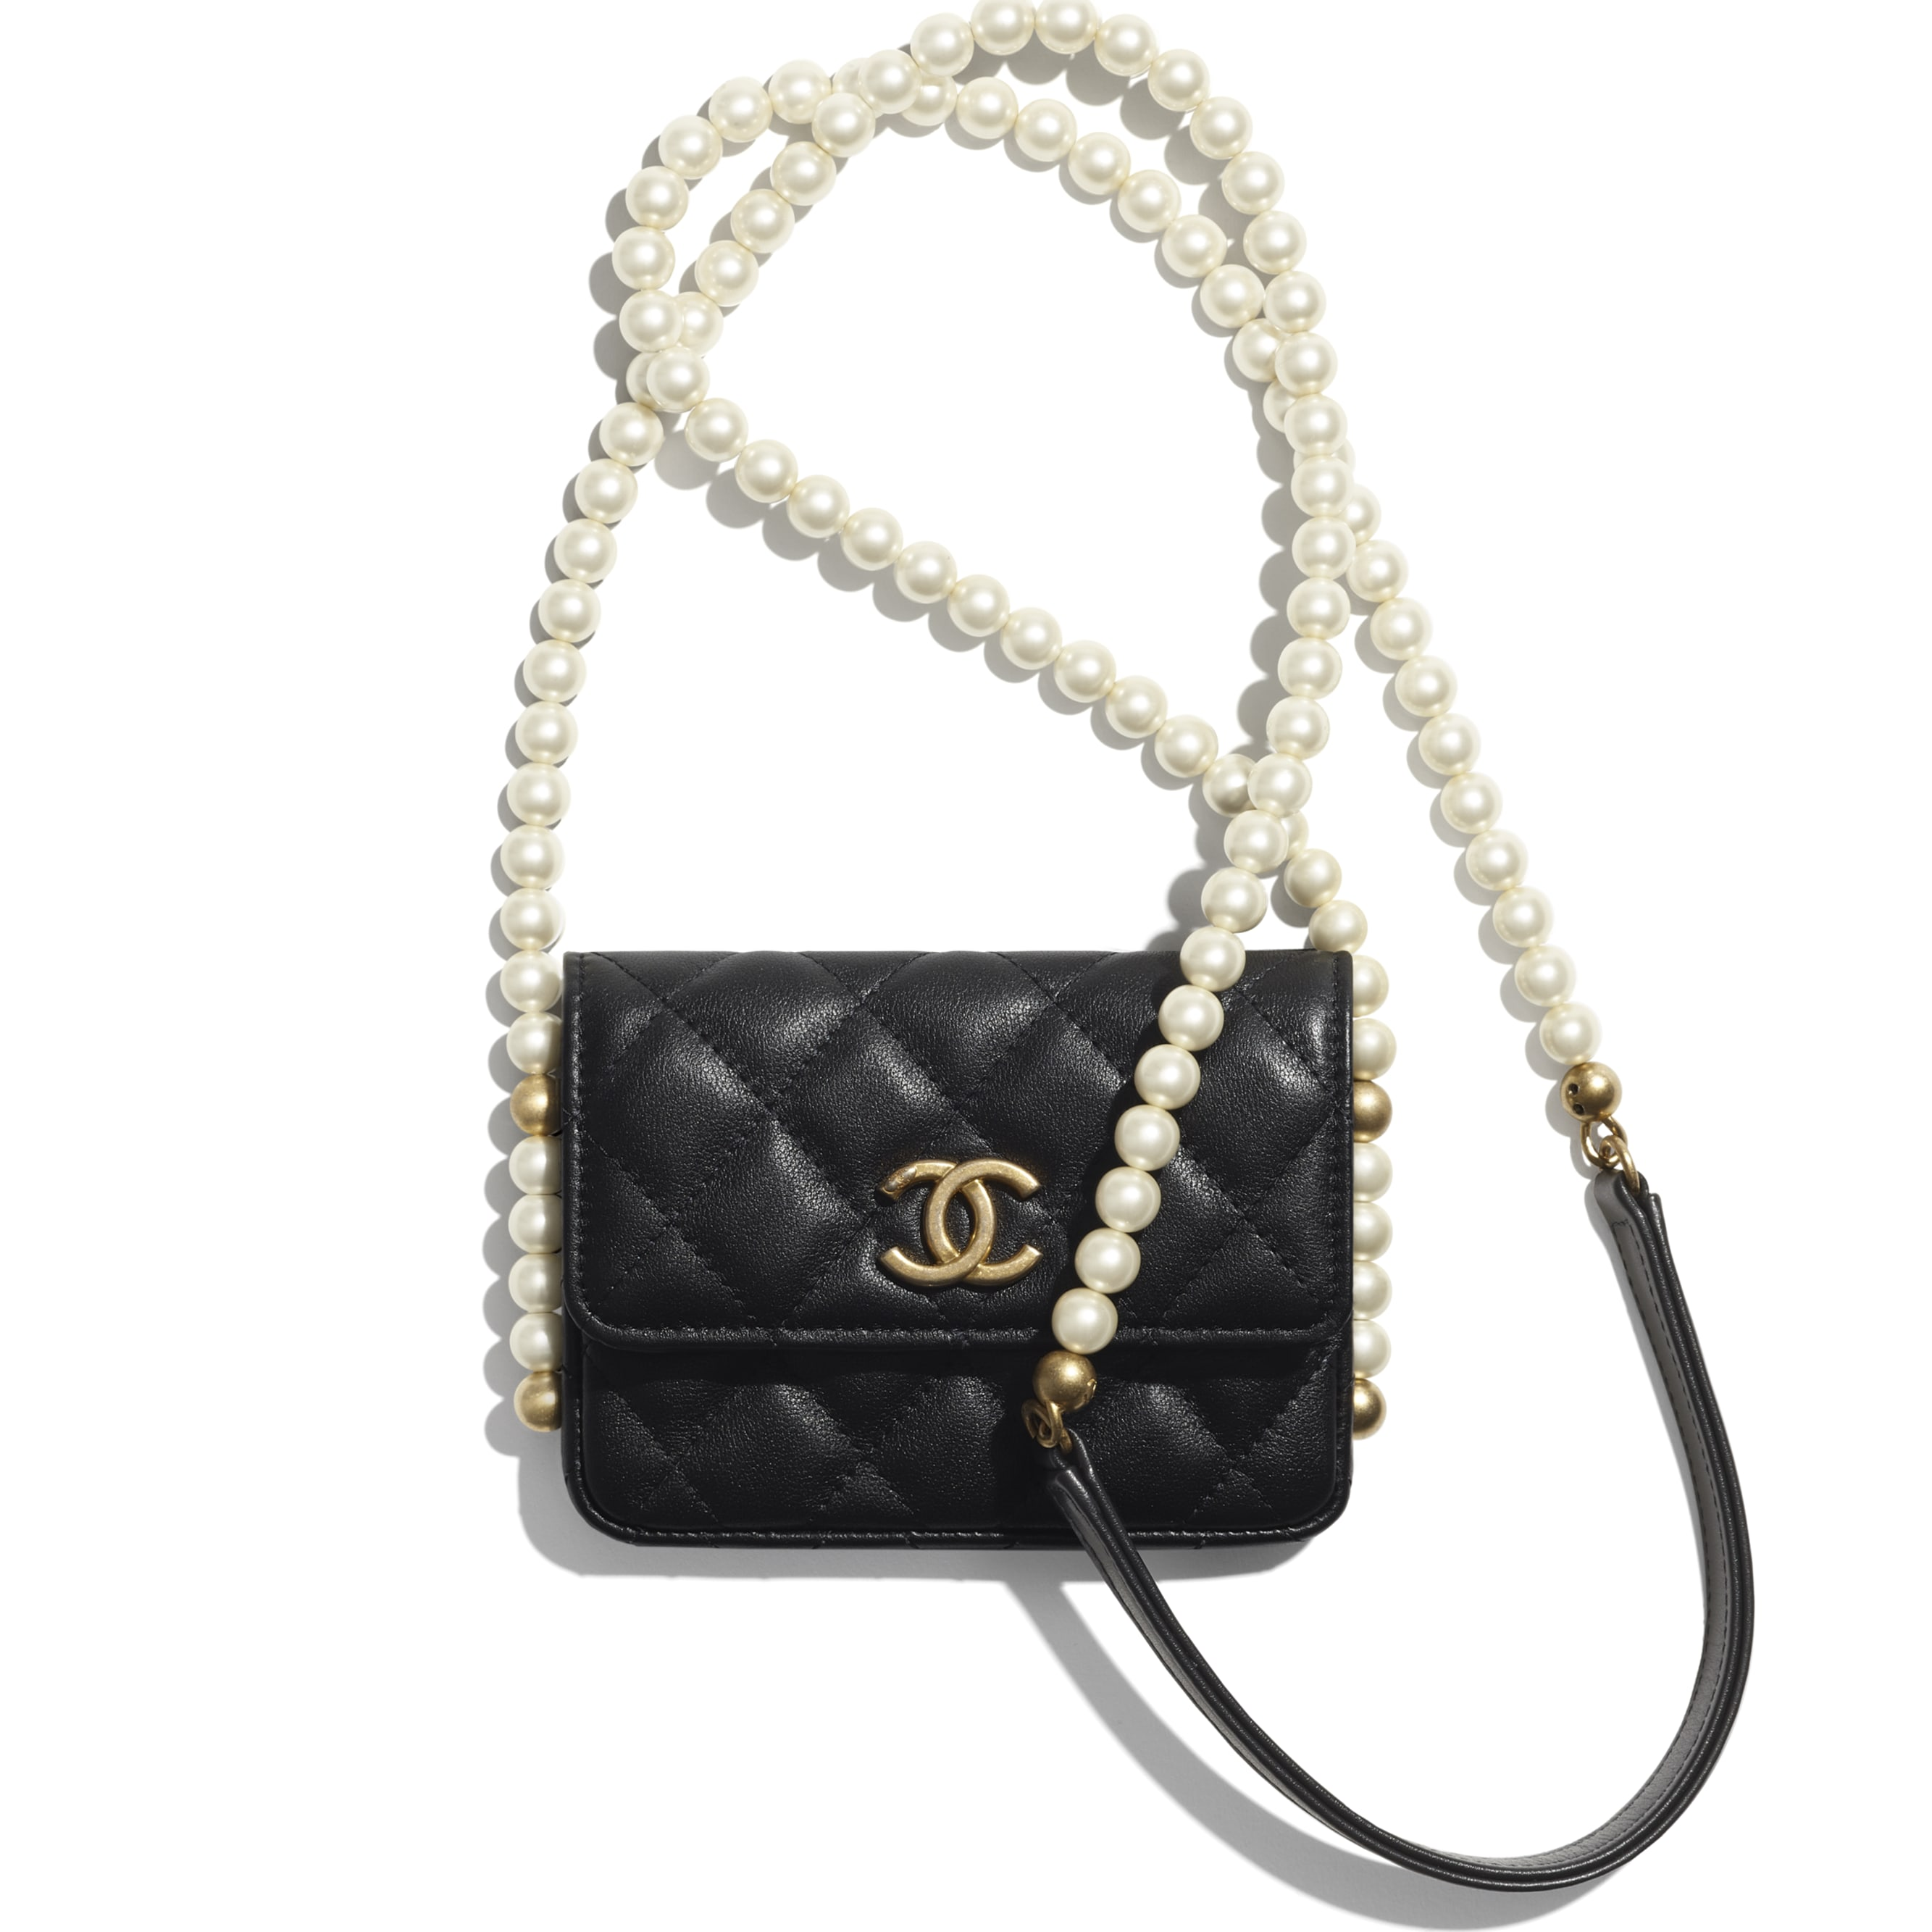 Flap Card Holder with Chain - Black - Calfskin, Imitation Pearls & Gold-Tone Metal - CHANEL - Default view - see standard sized version